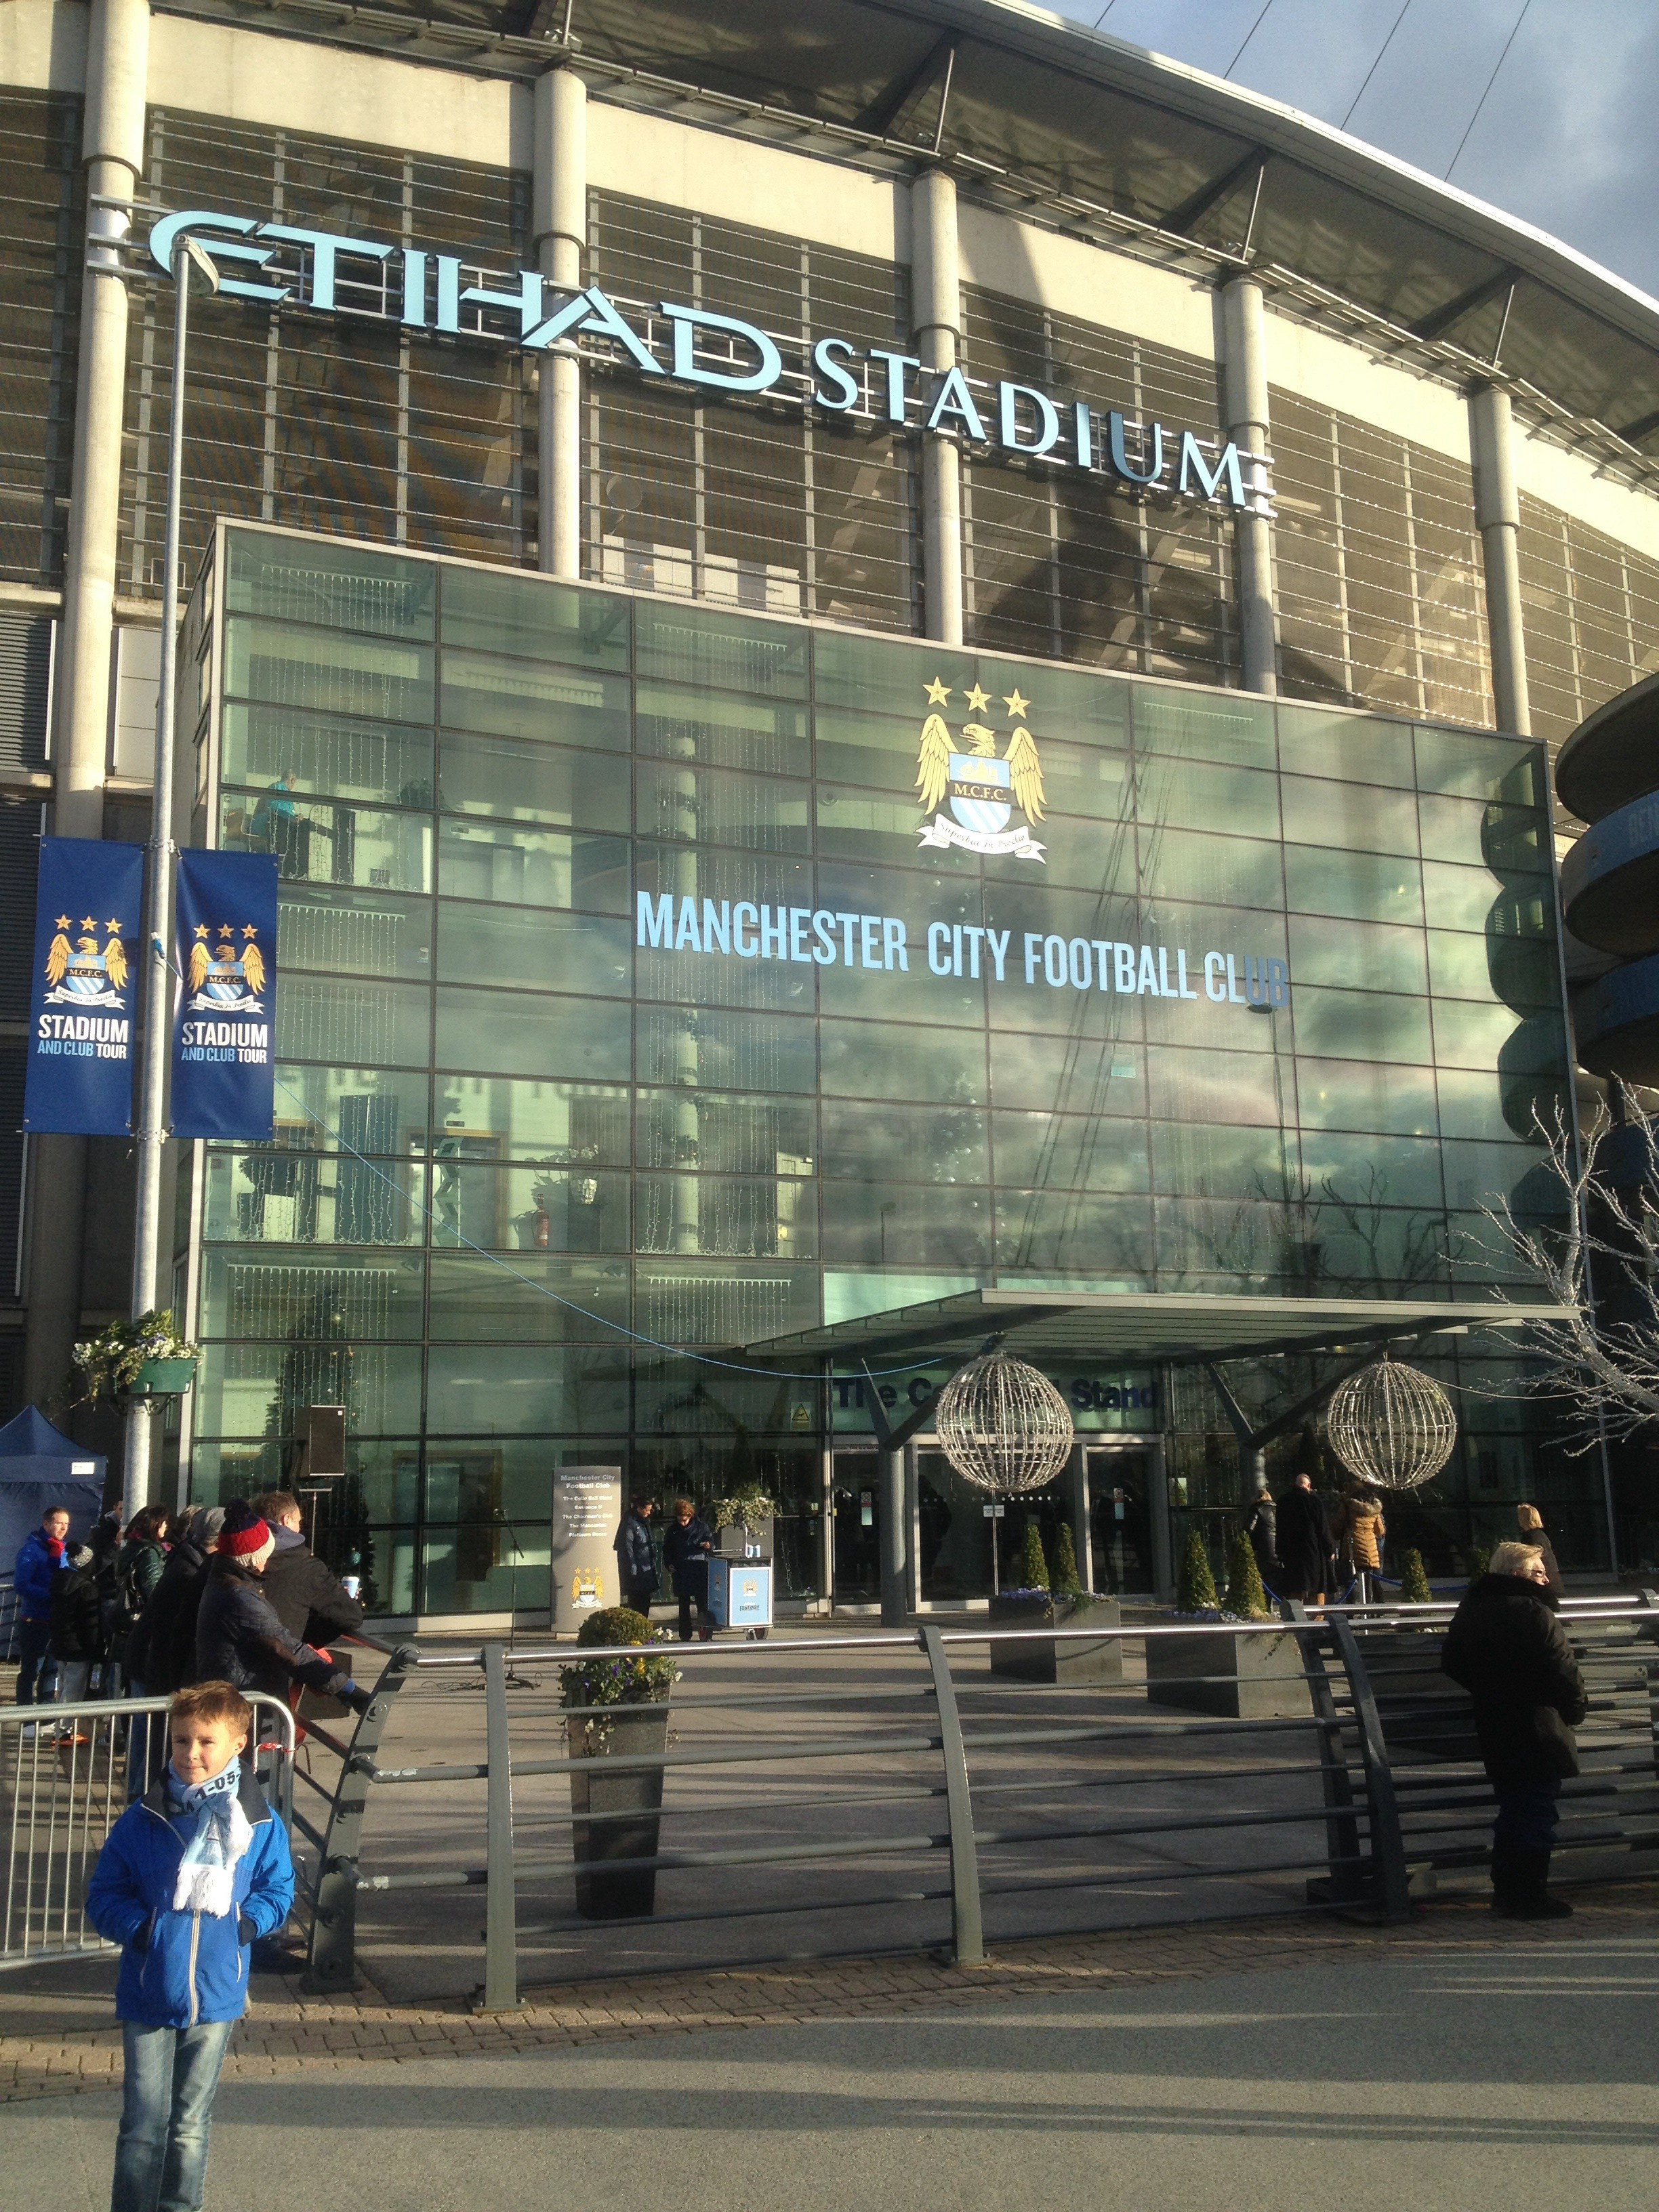 Outside the stadium